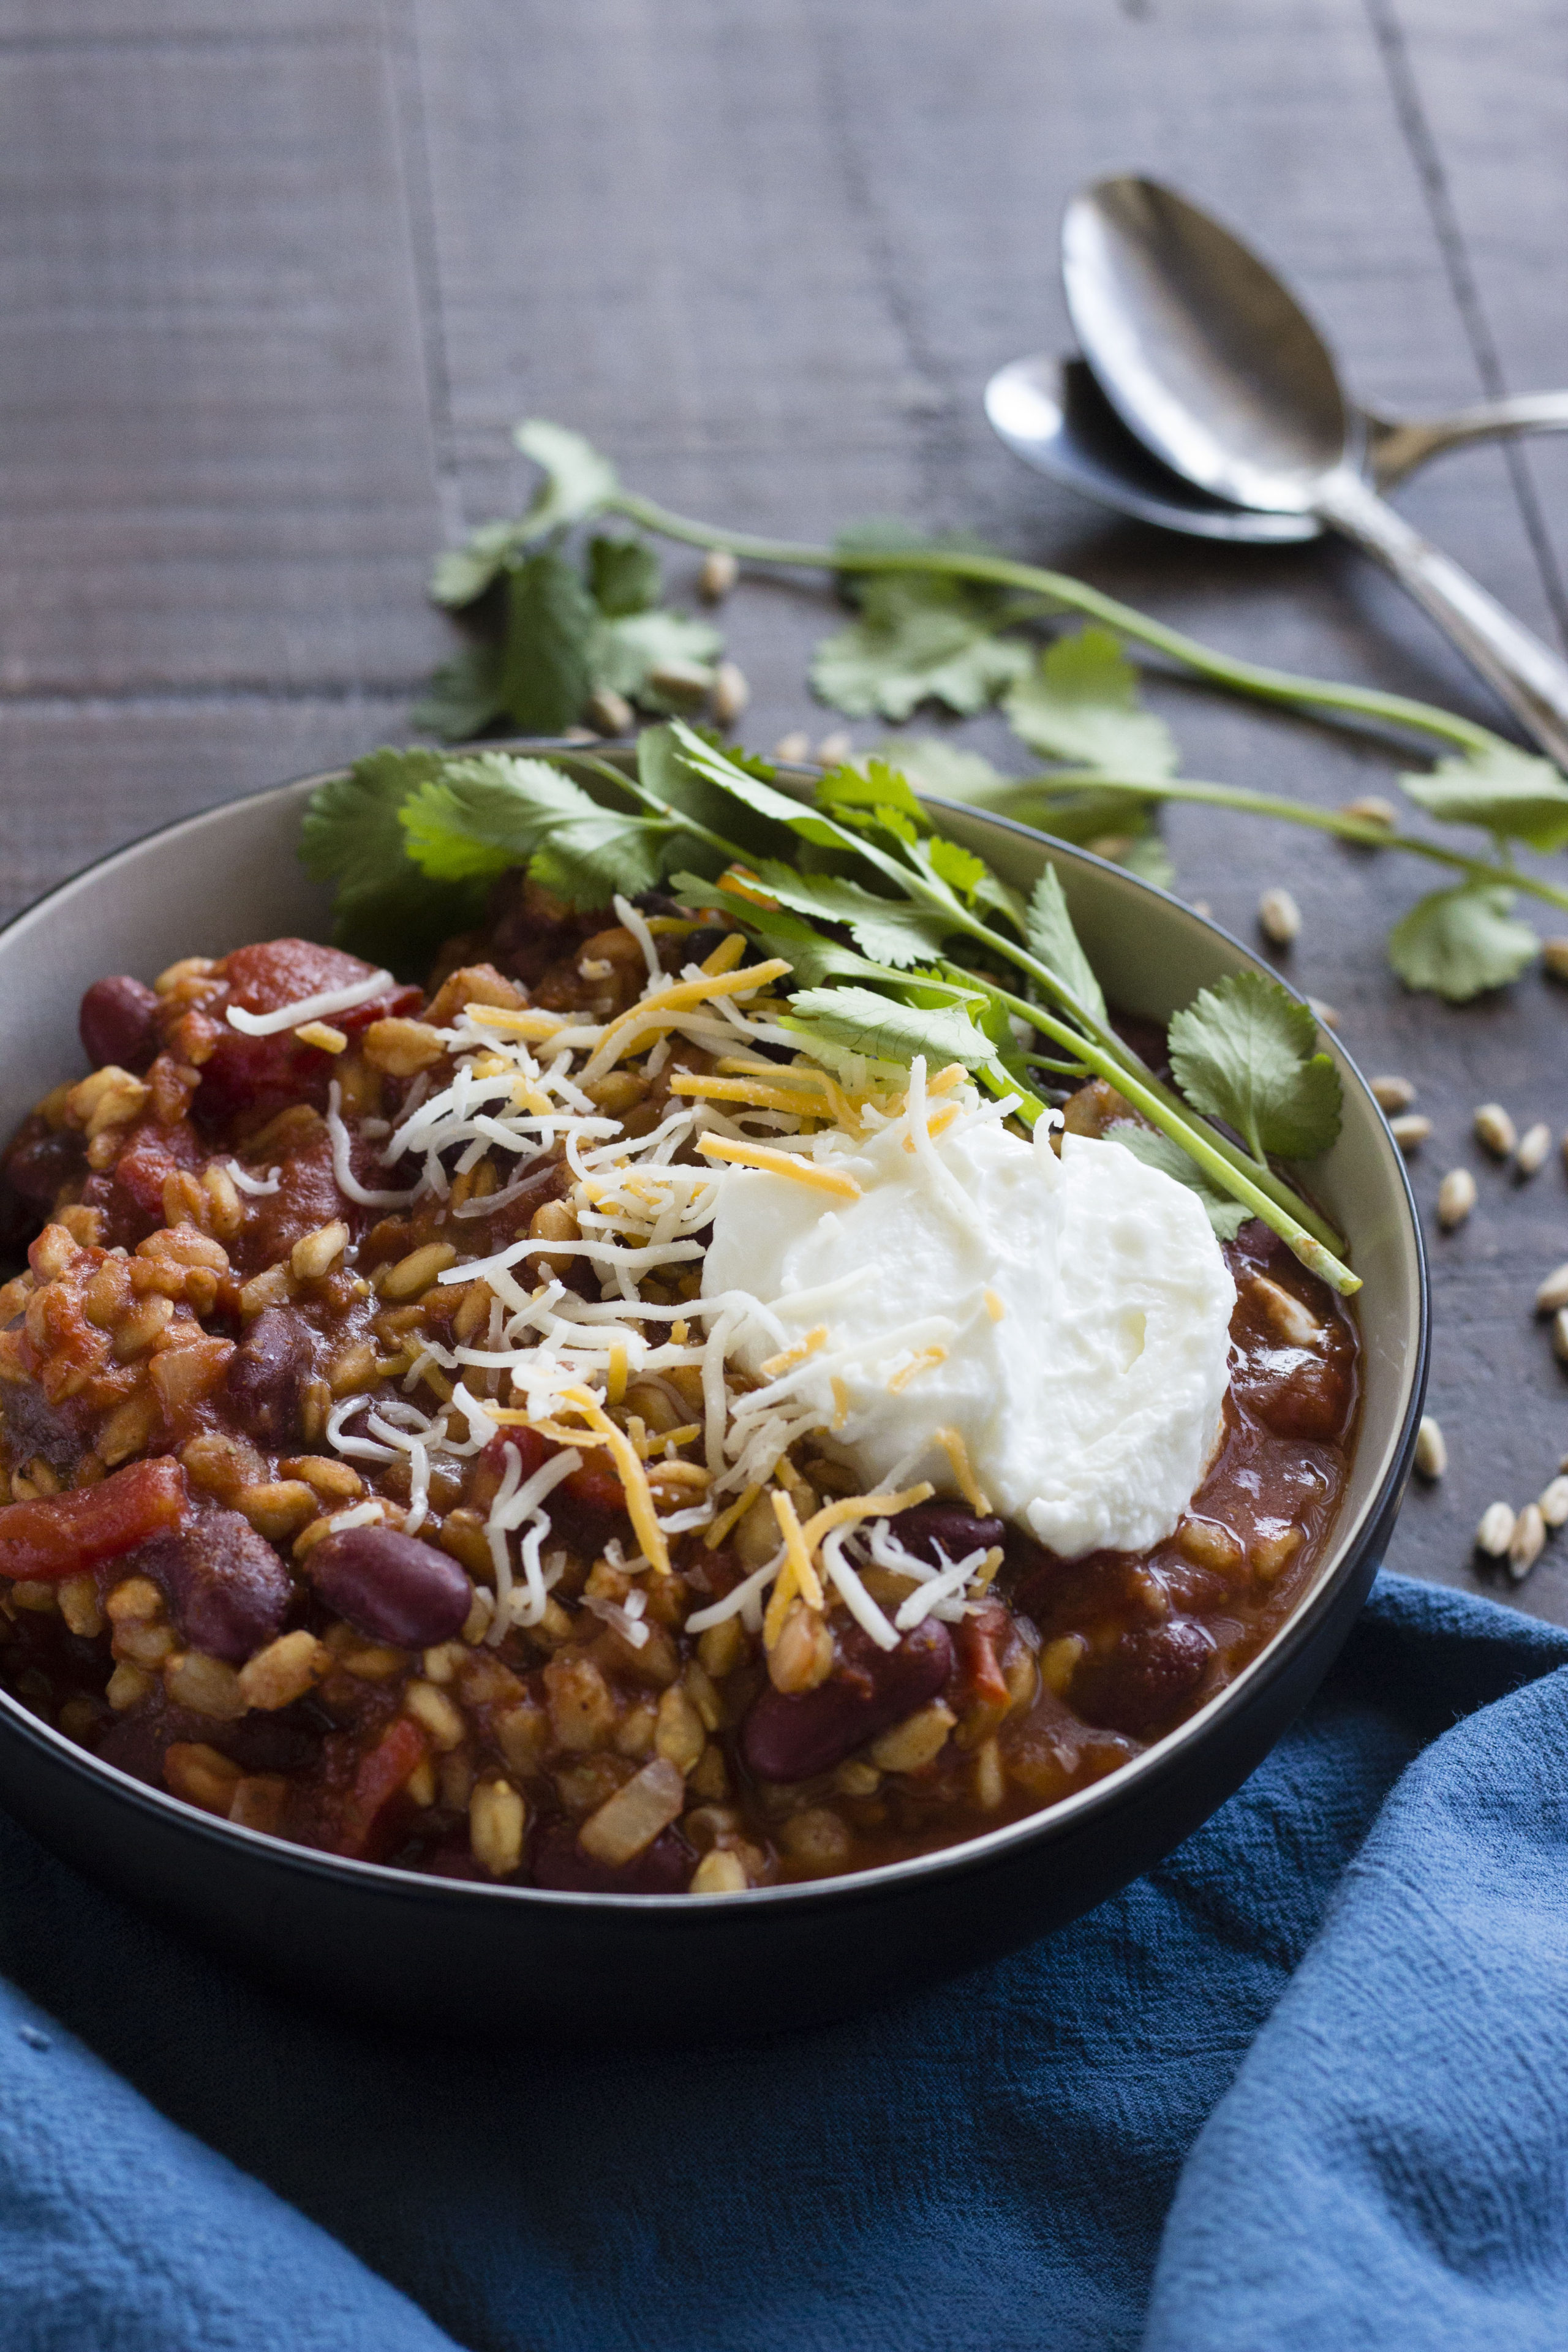 Easy Farro Chili | Vegetarian chili with farro & beans made in your slow cooker!